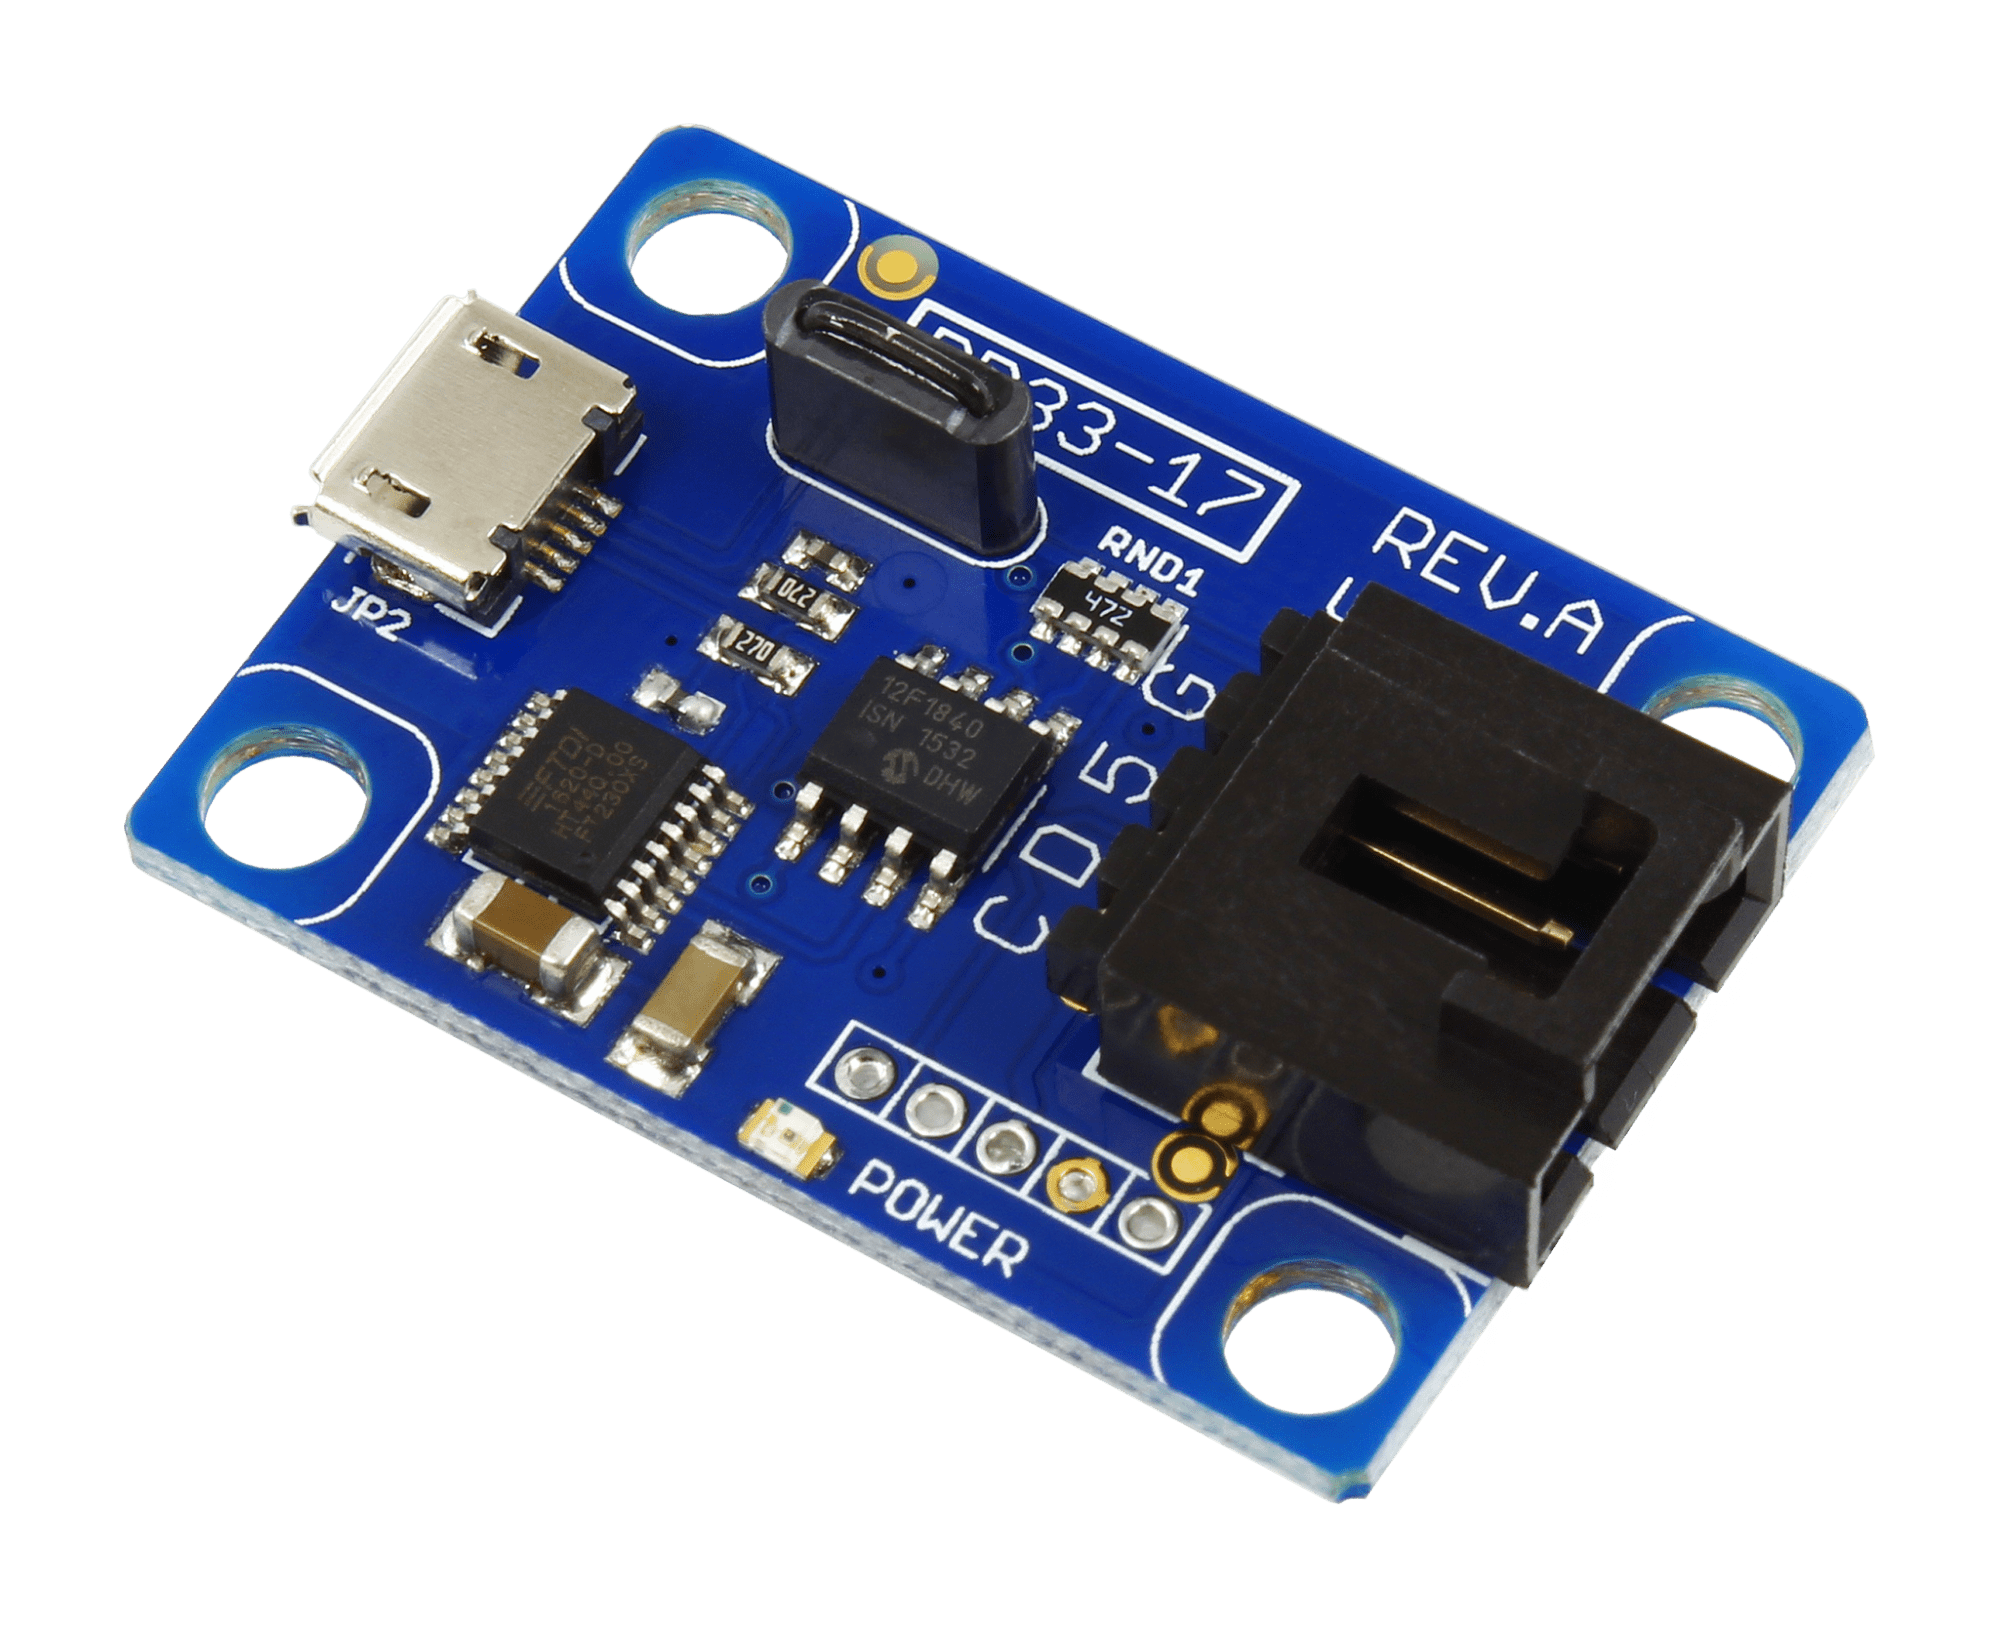 hight resolution of usb to i2c converter with virtual com port ft230xs